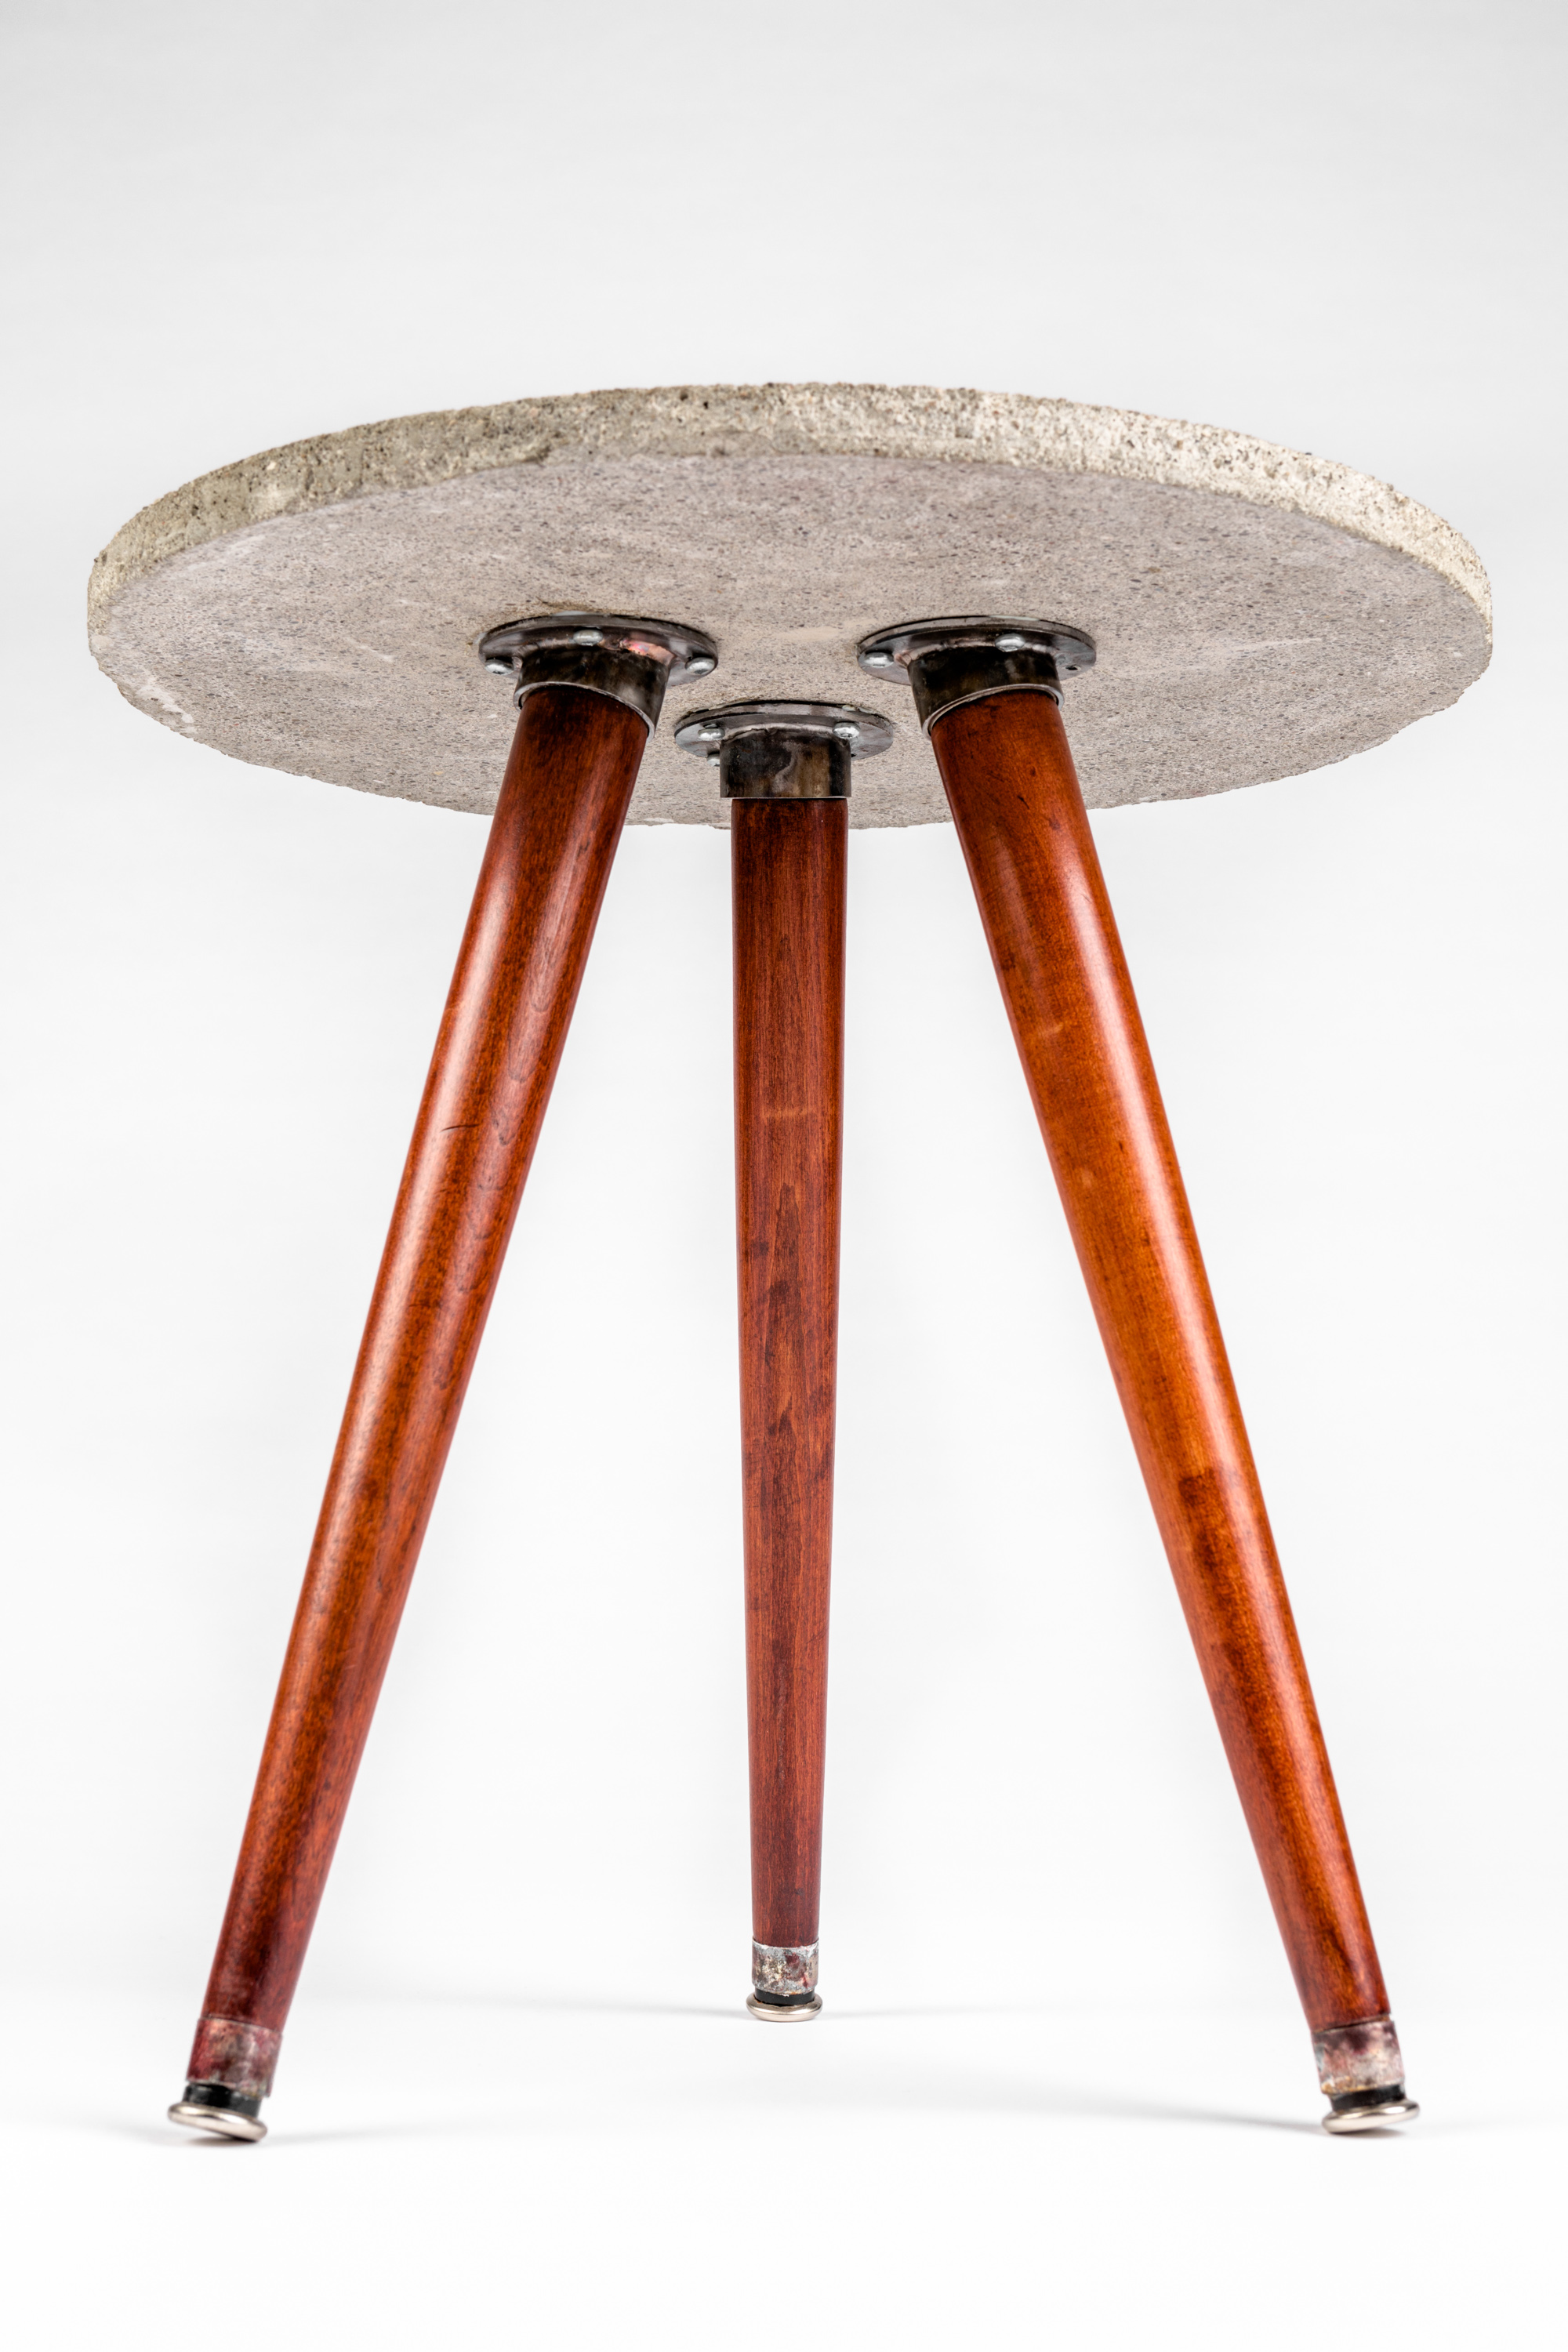 Concrete-Sidetable-Scandinavian-Style-Lalaya-Design-lowview.jpg